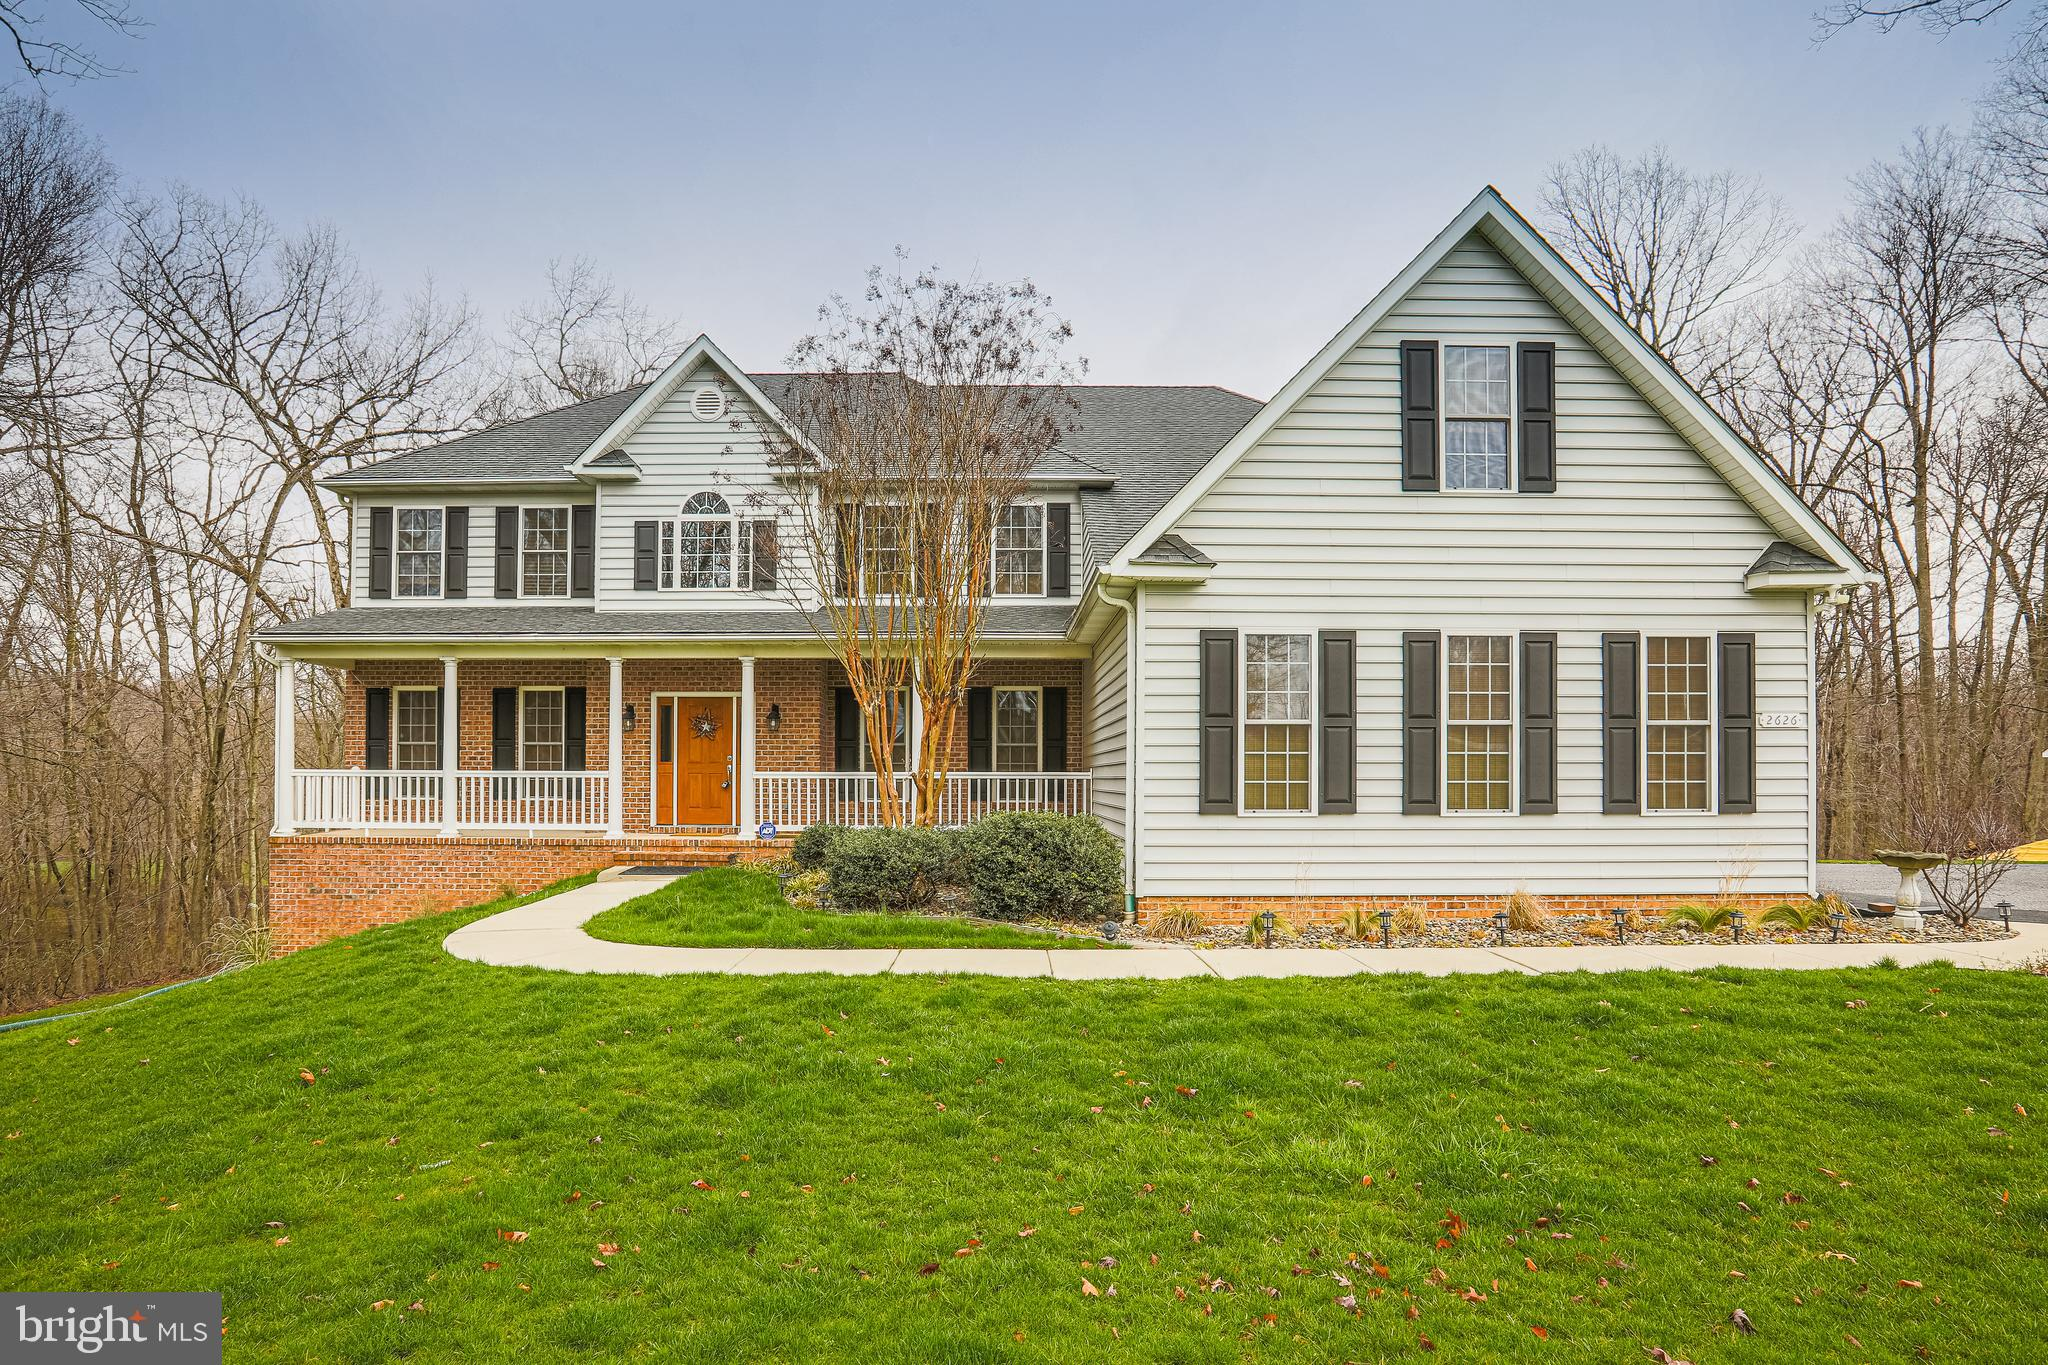 Amazing, gorgeous, over 6500 sq. Ft., 5 BR, 4 full baths & 1 half bath home. Sits privately, back in